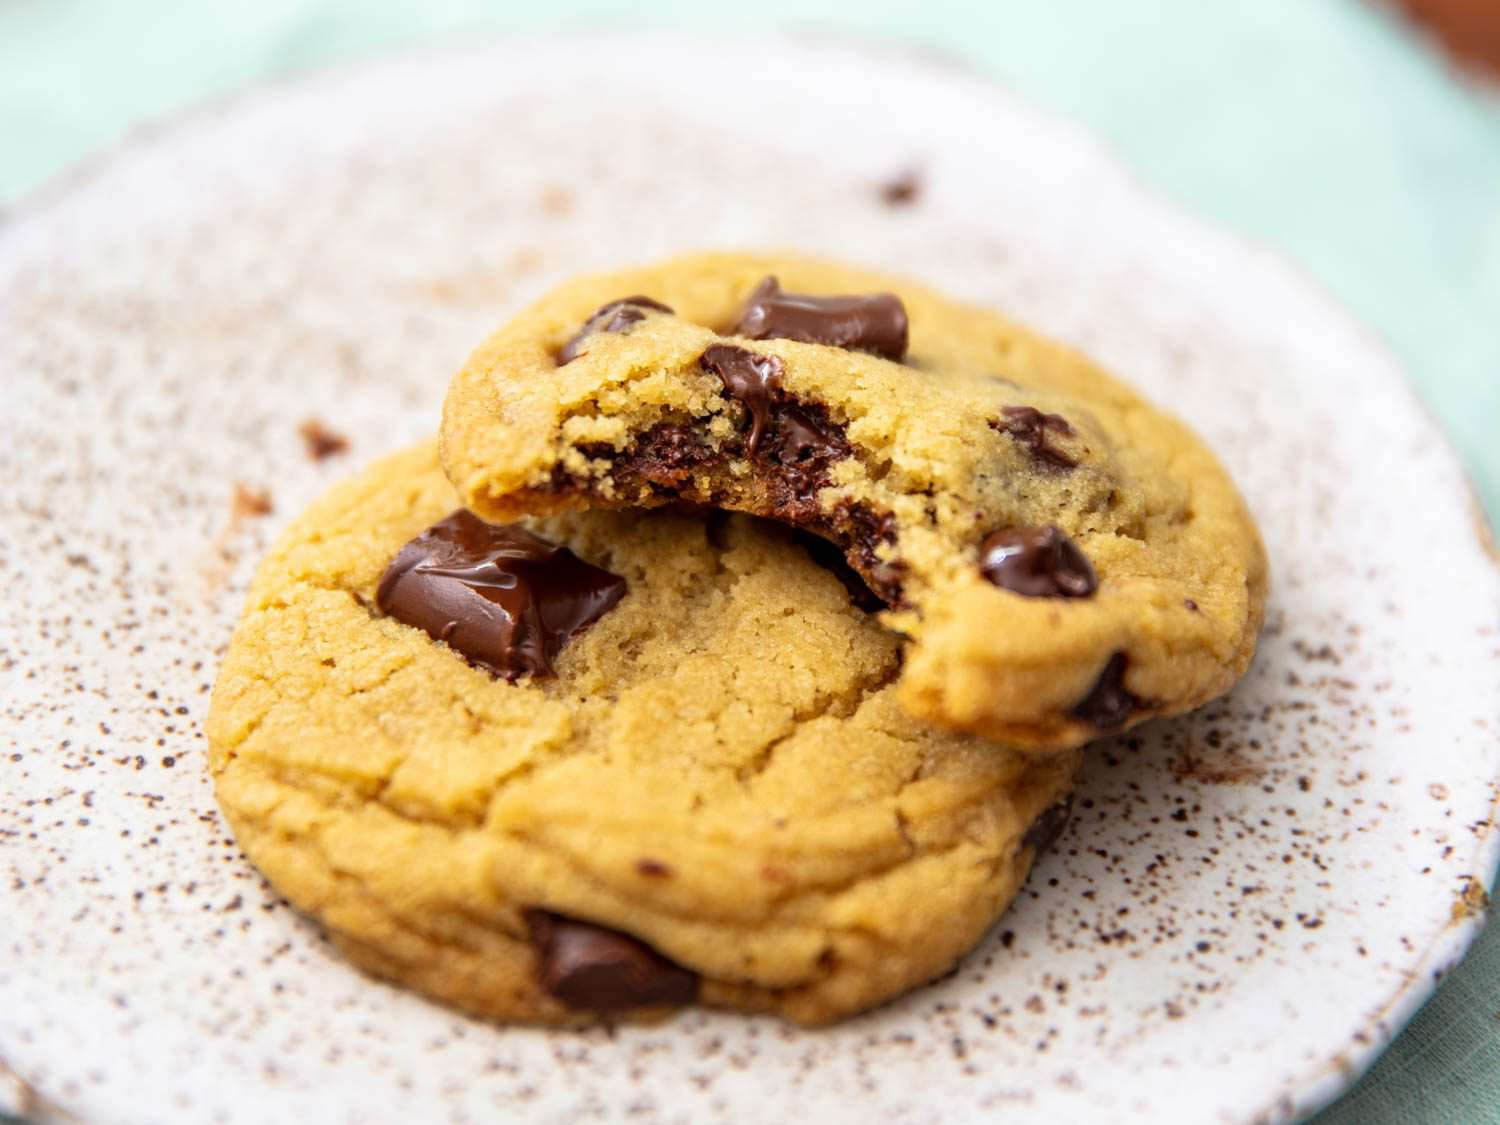 close up of two chocolate chip cookies on a plate, one with a bite missing